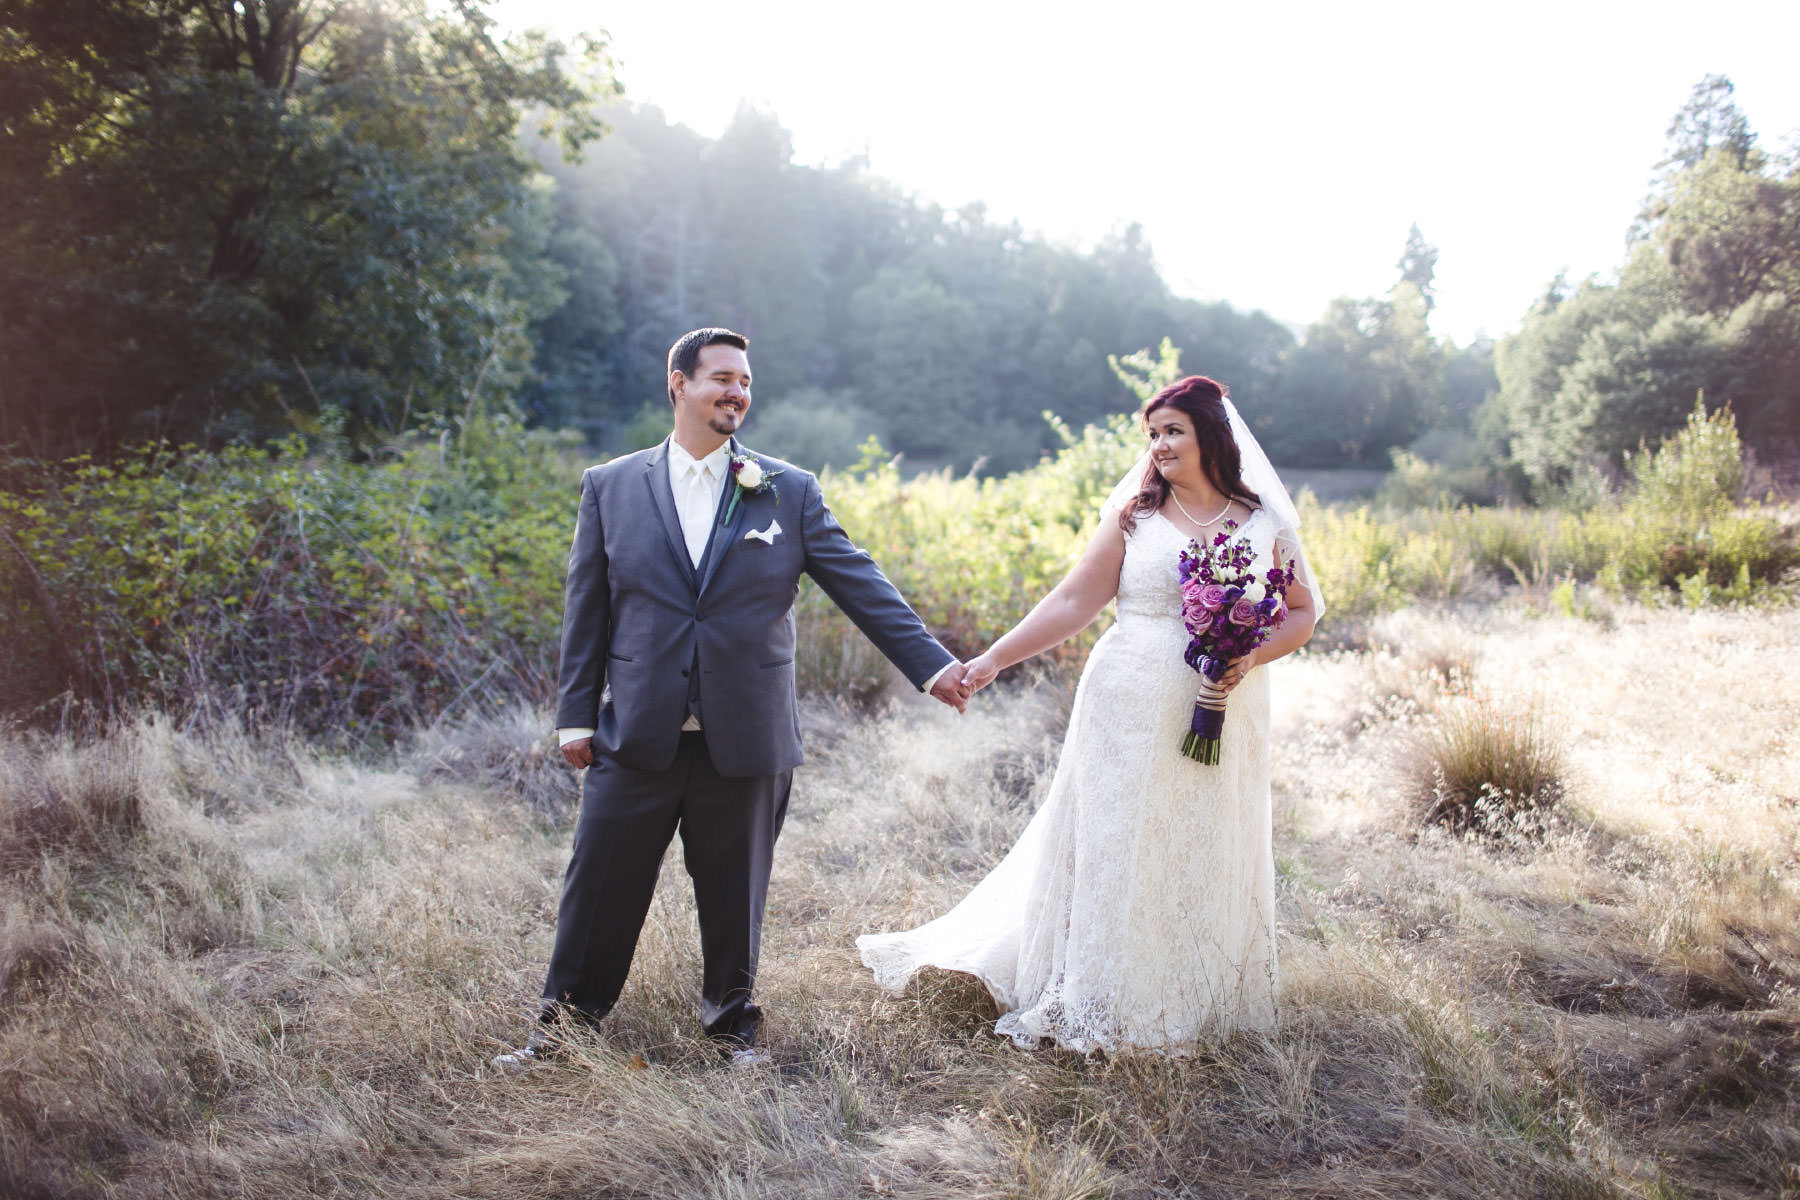 Palomar Mountain Wedding : Donna & Devan